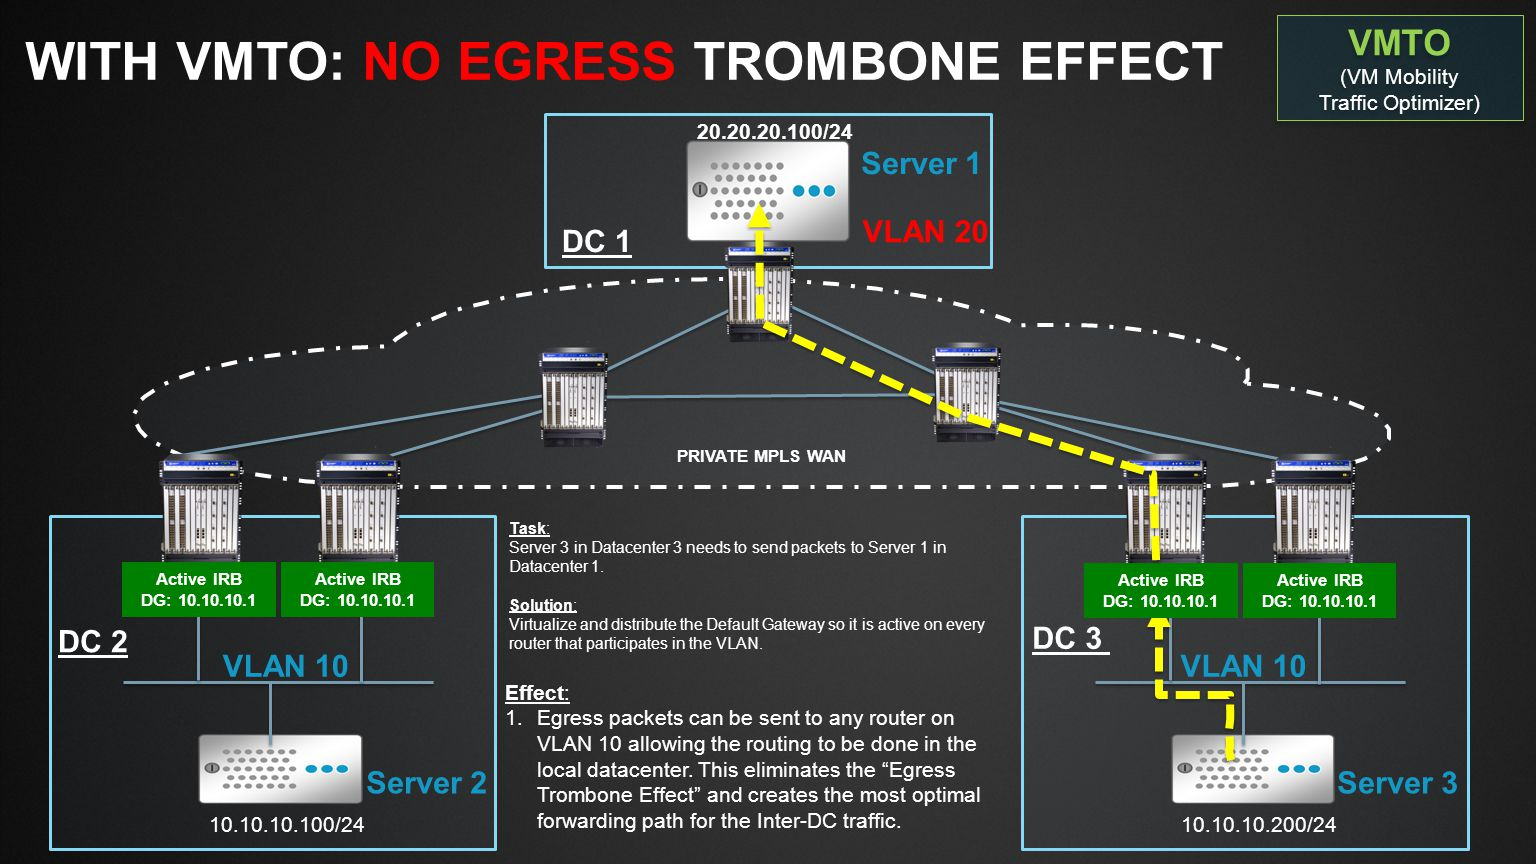 With VMTO: No Egress Trombone Effect